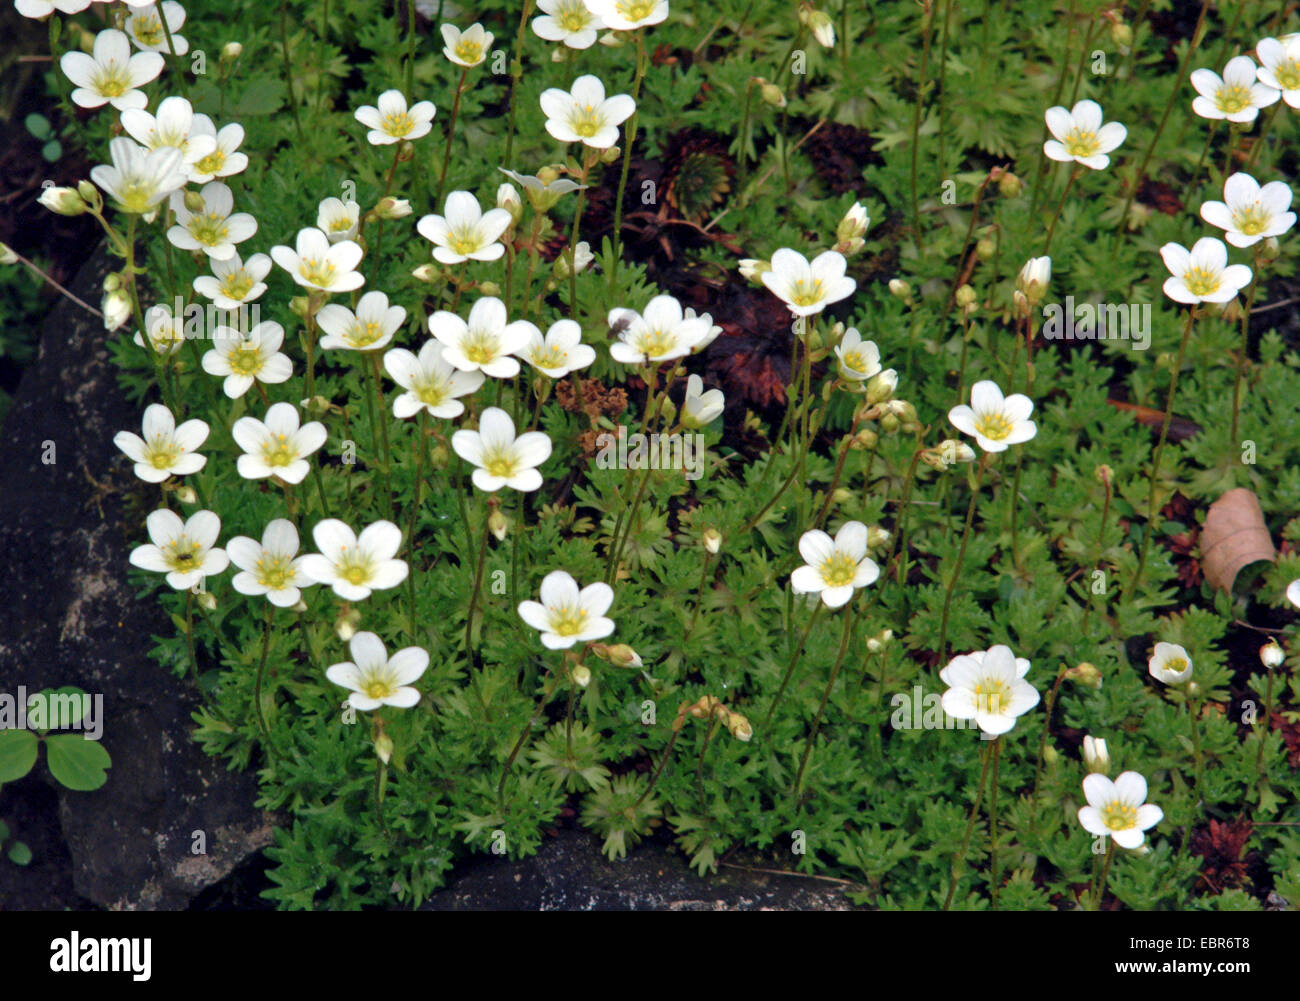 Rose Saxifrage (Saxifraga rosacea), blooming, Germany Stock Photo